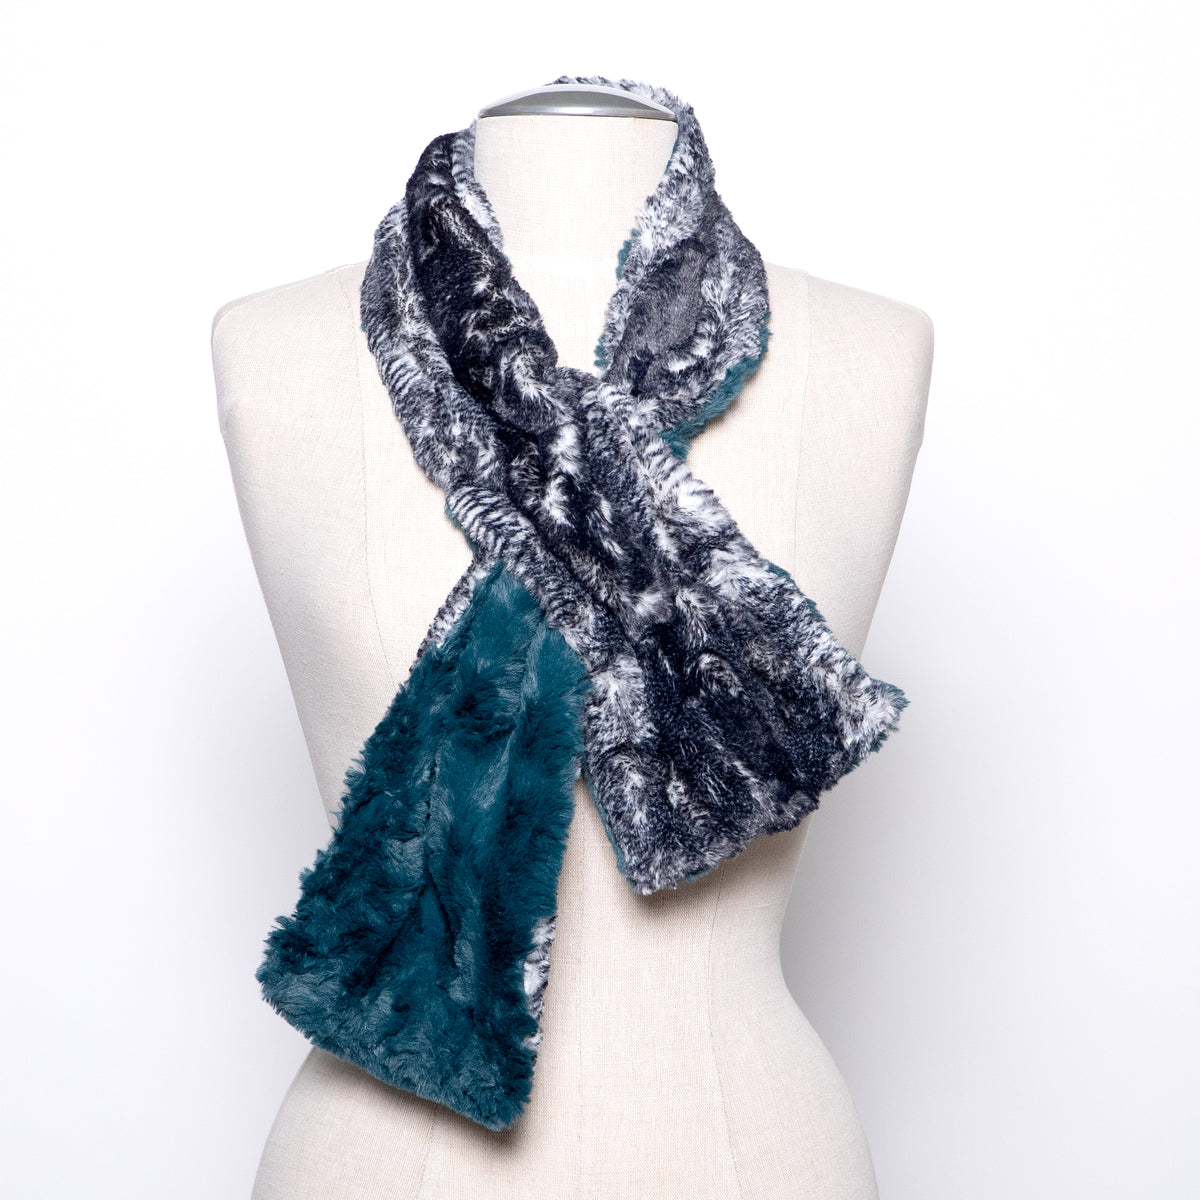 Pandemonium Pull Through Scarf in Peacock Pond and Black